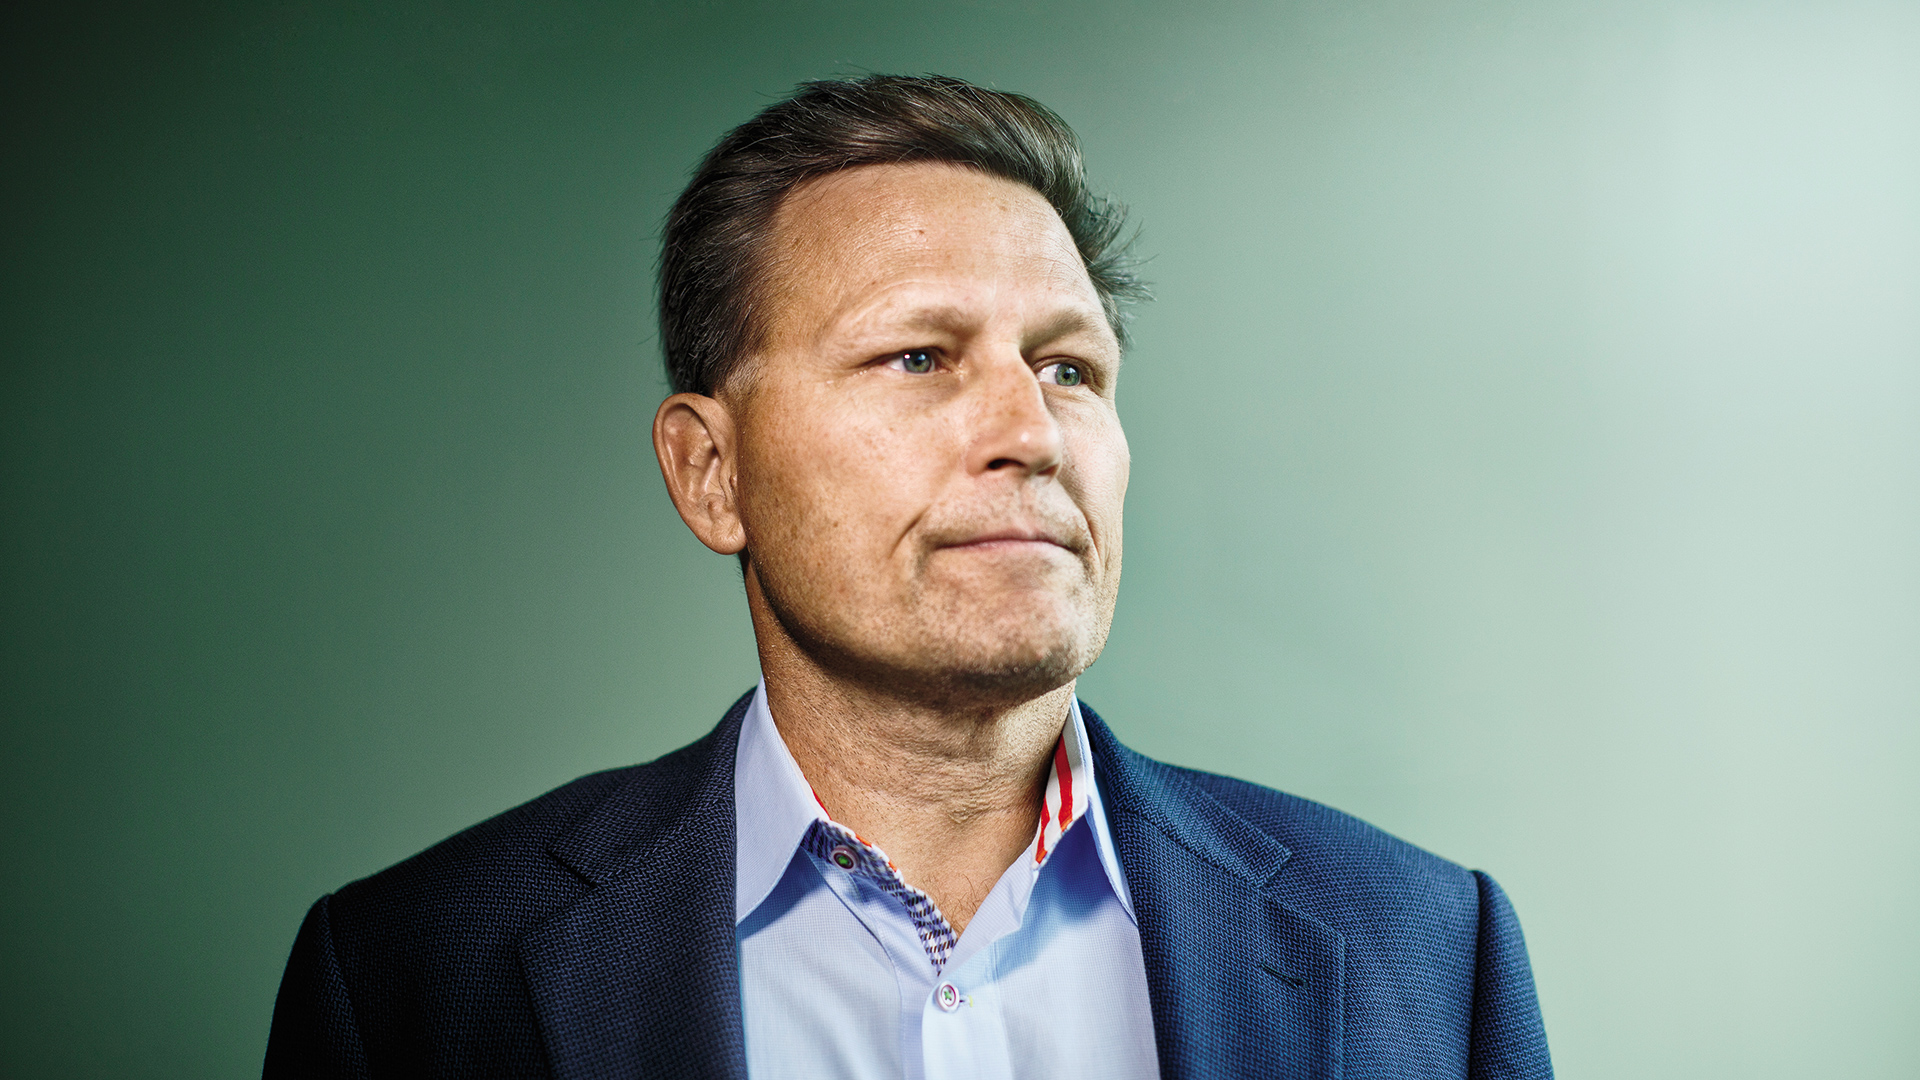 David Baldacci author